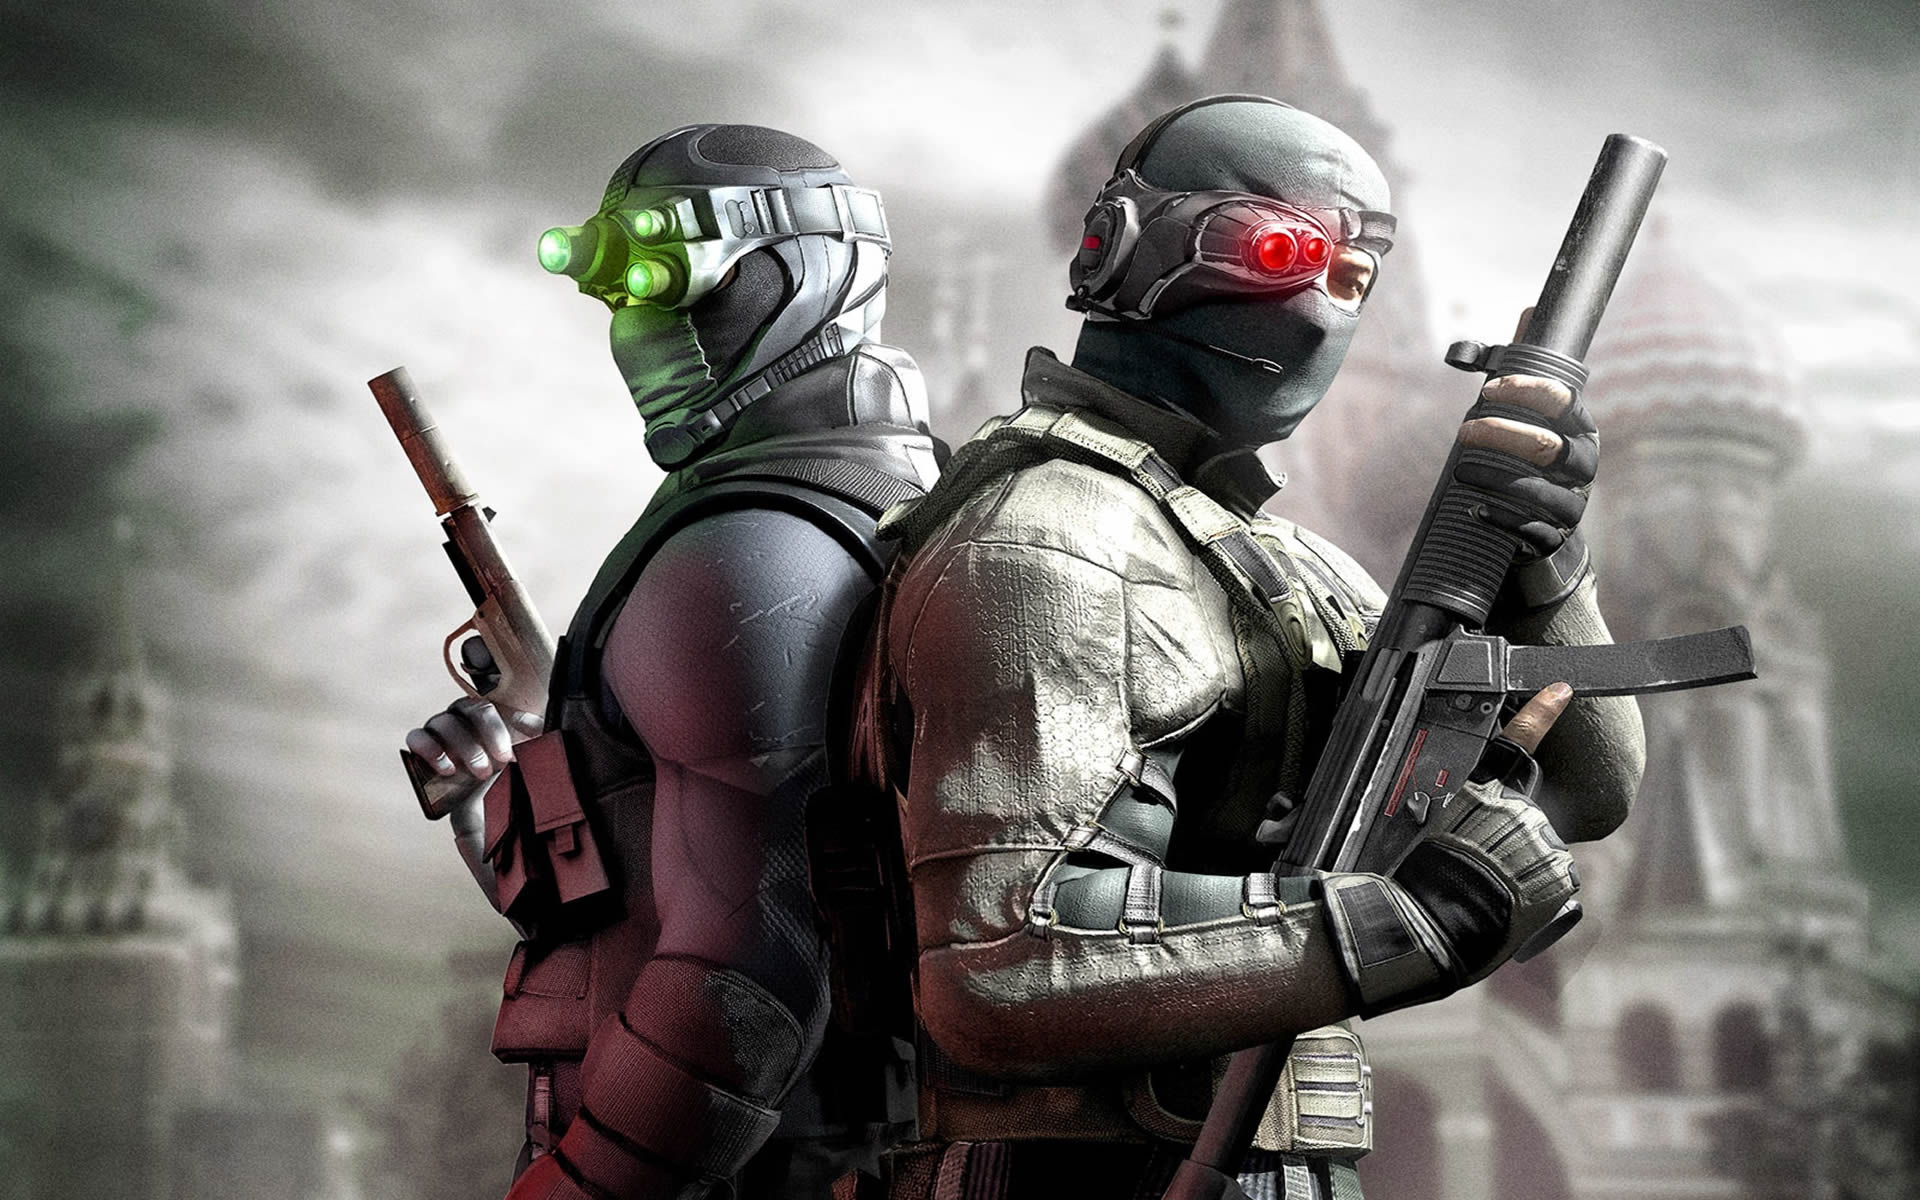 Green And Red Multiplayer   Splinter Cell Conviction Wallpaper 1920x1200